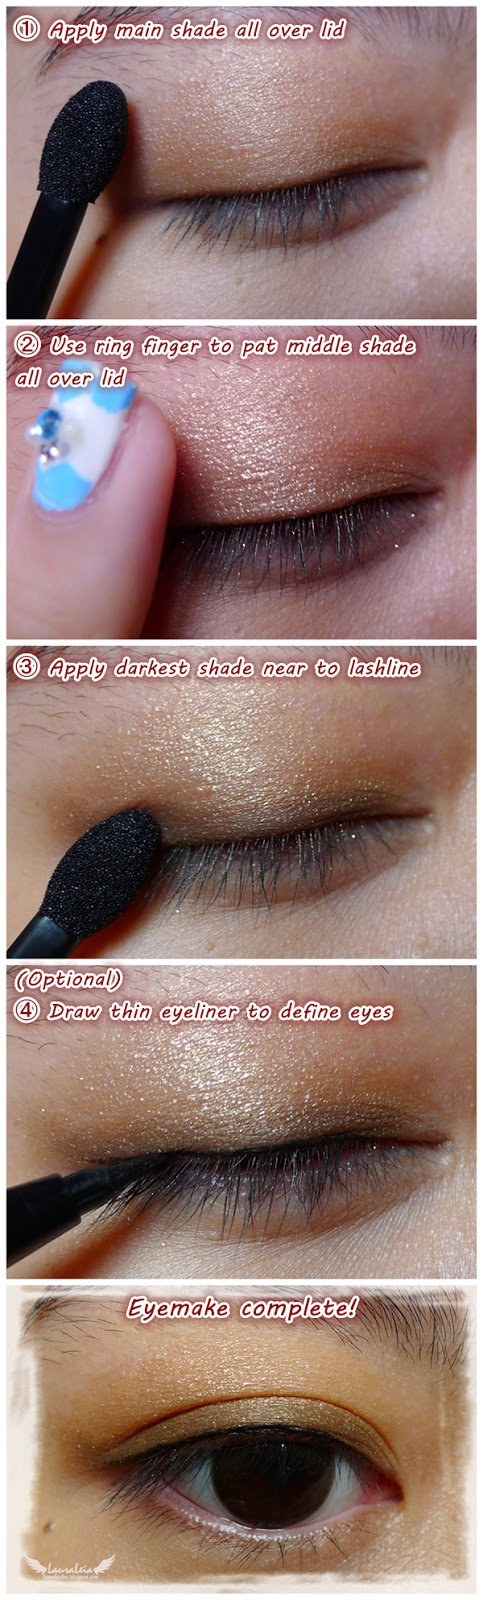 CANMAKE Juicy Pure Eyes Eyeshadow pictorial step-by-step